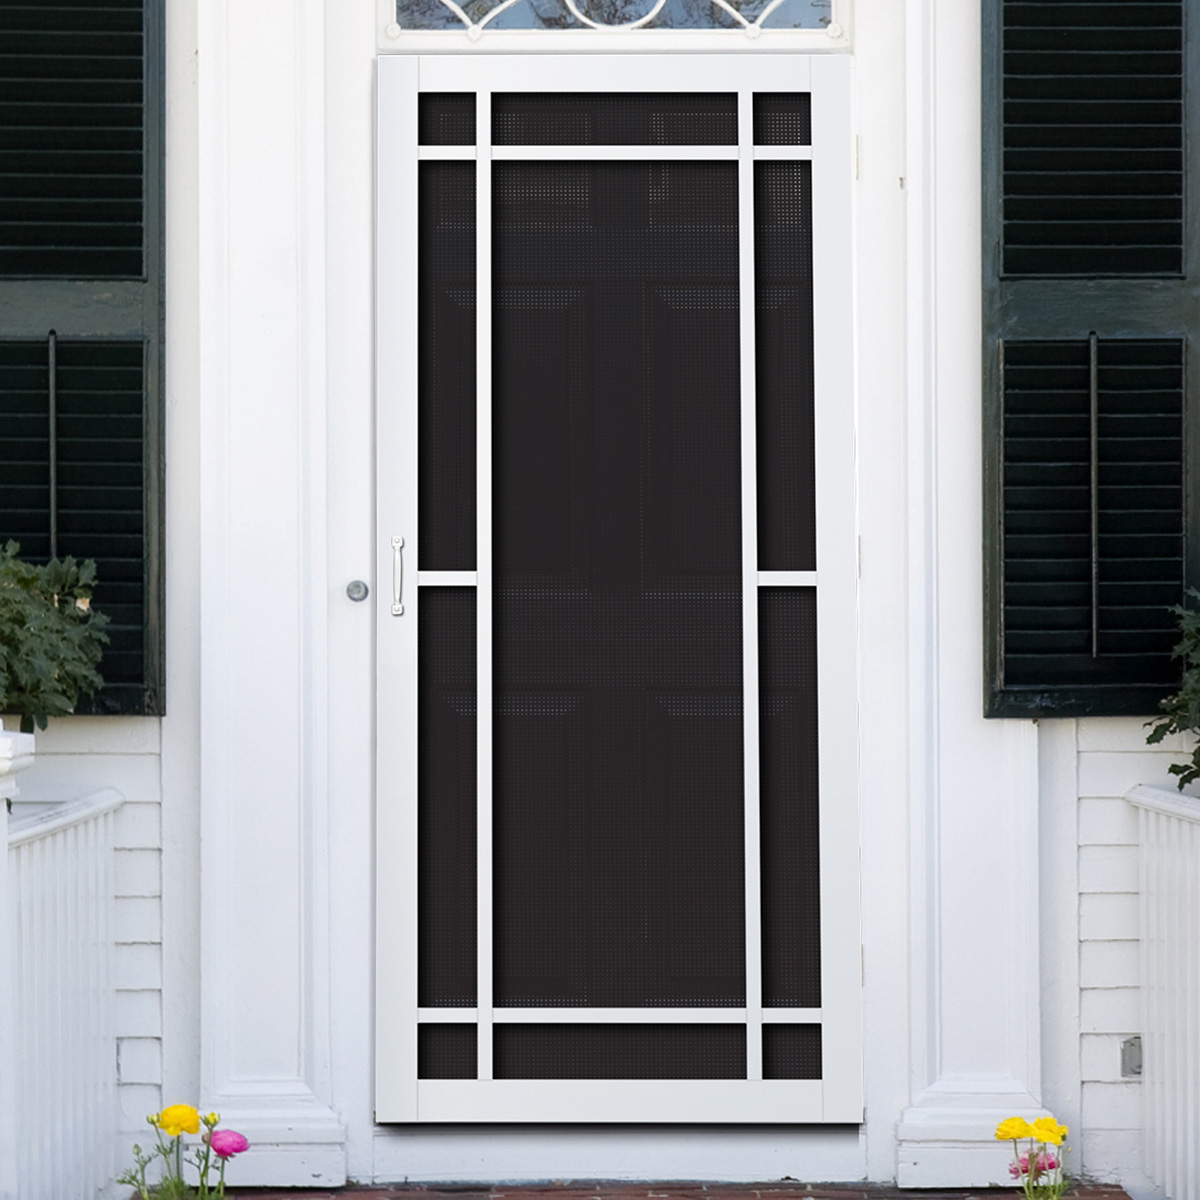 Titan security security screen door products security for Sliding storm doors home depot